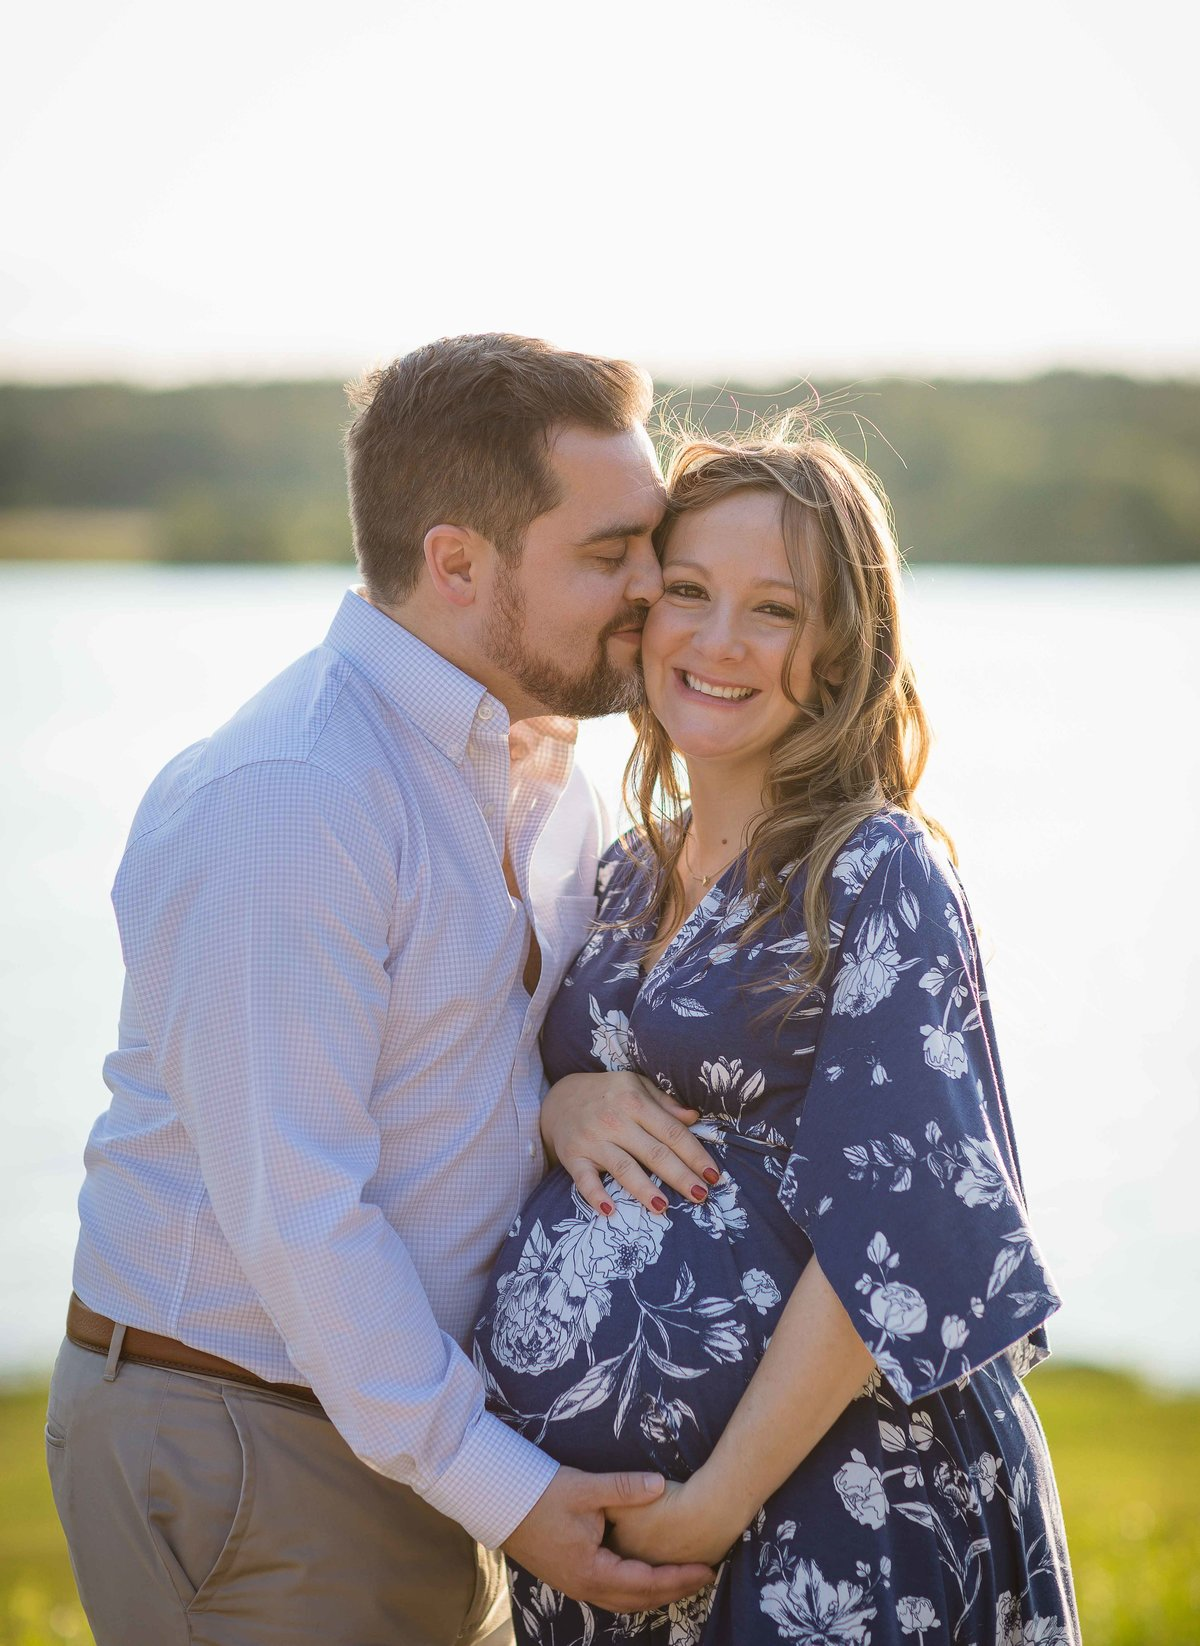 Connecticut Maternity Photographer - 30